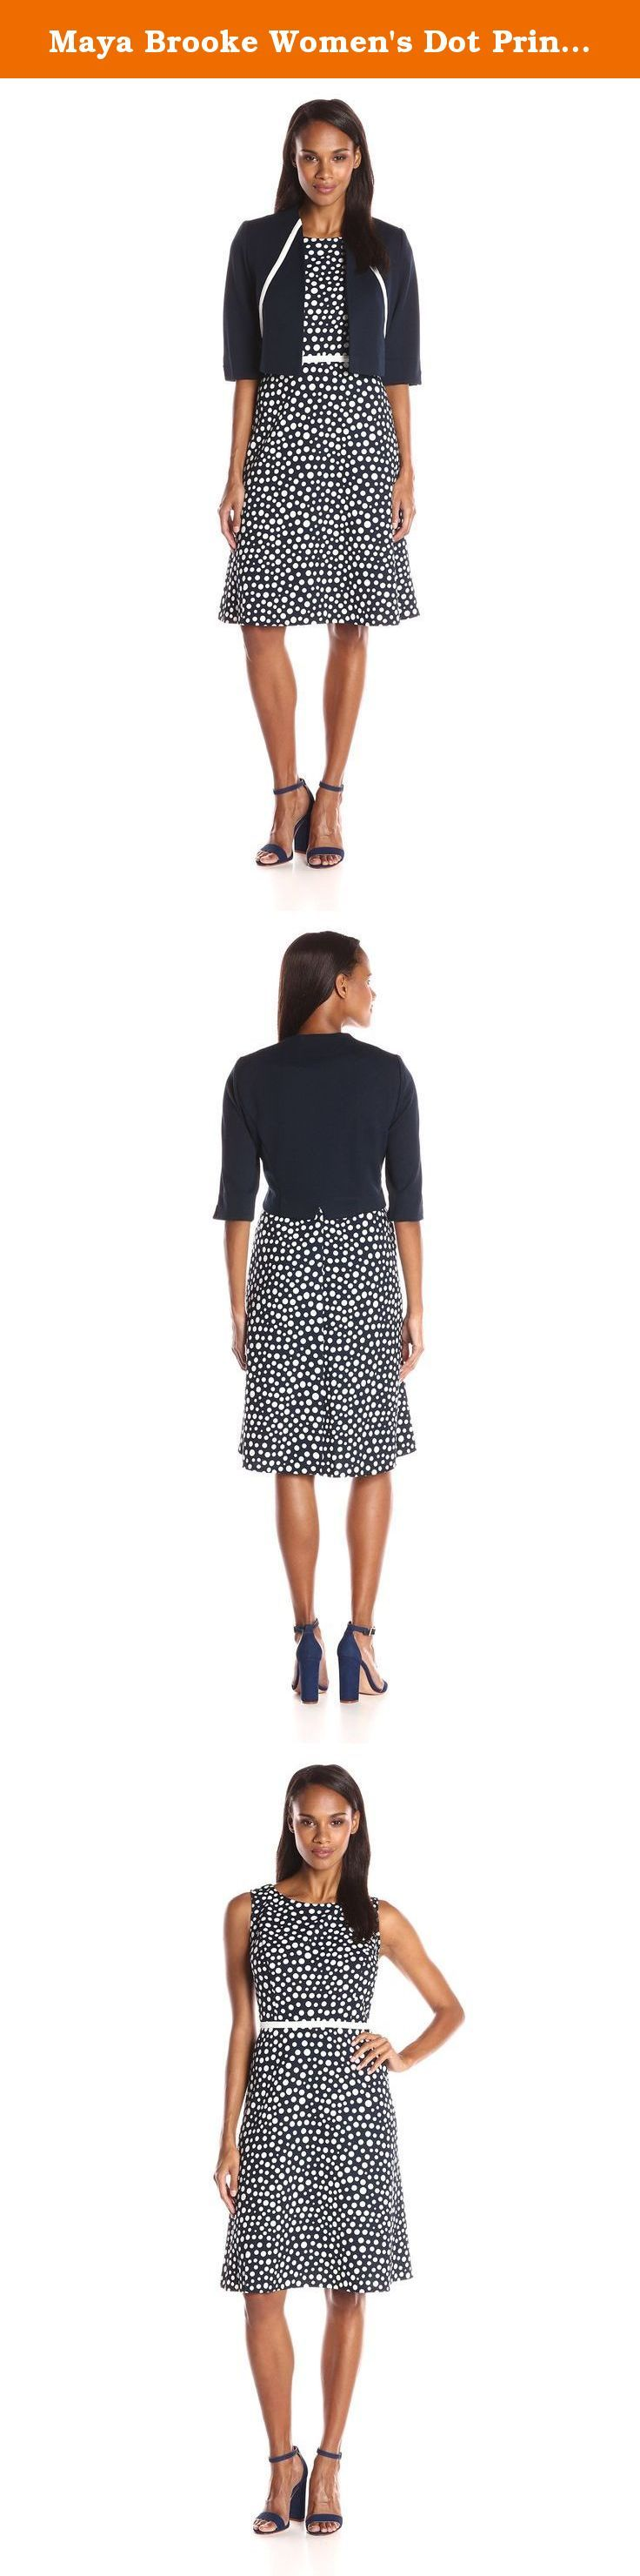 Maya Brooke Women's Dot Print a Line Jacket and Dress Set, Navy/Ivory, 12. Perfect for the office or social occasion can be used as guest of wedding mother of the bride.